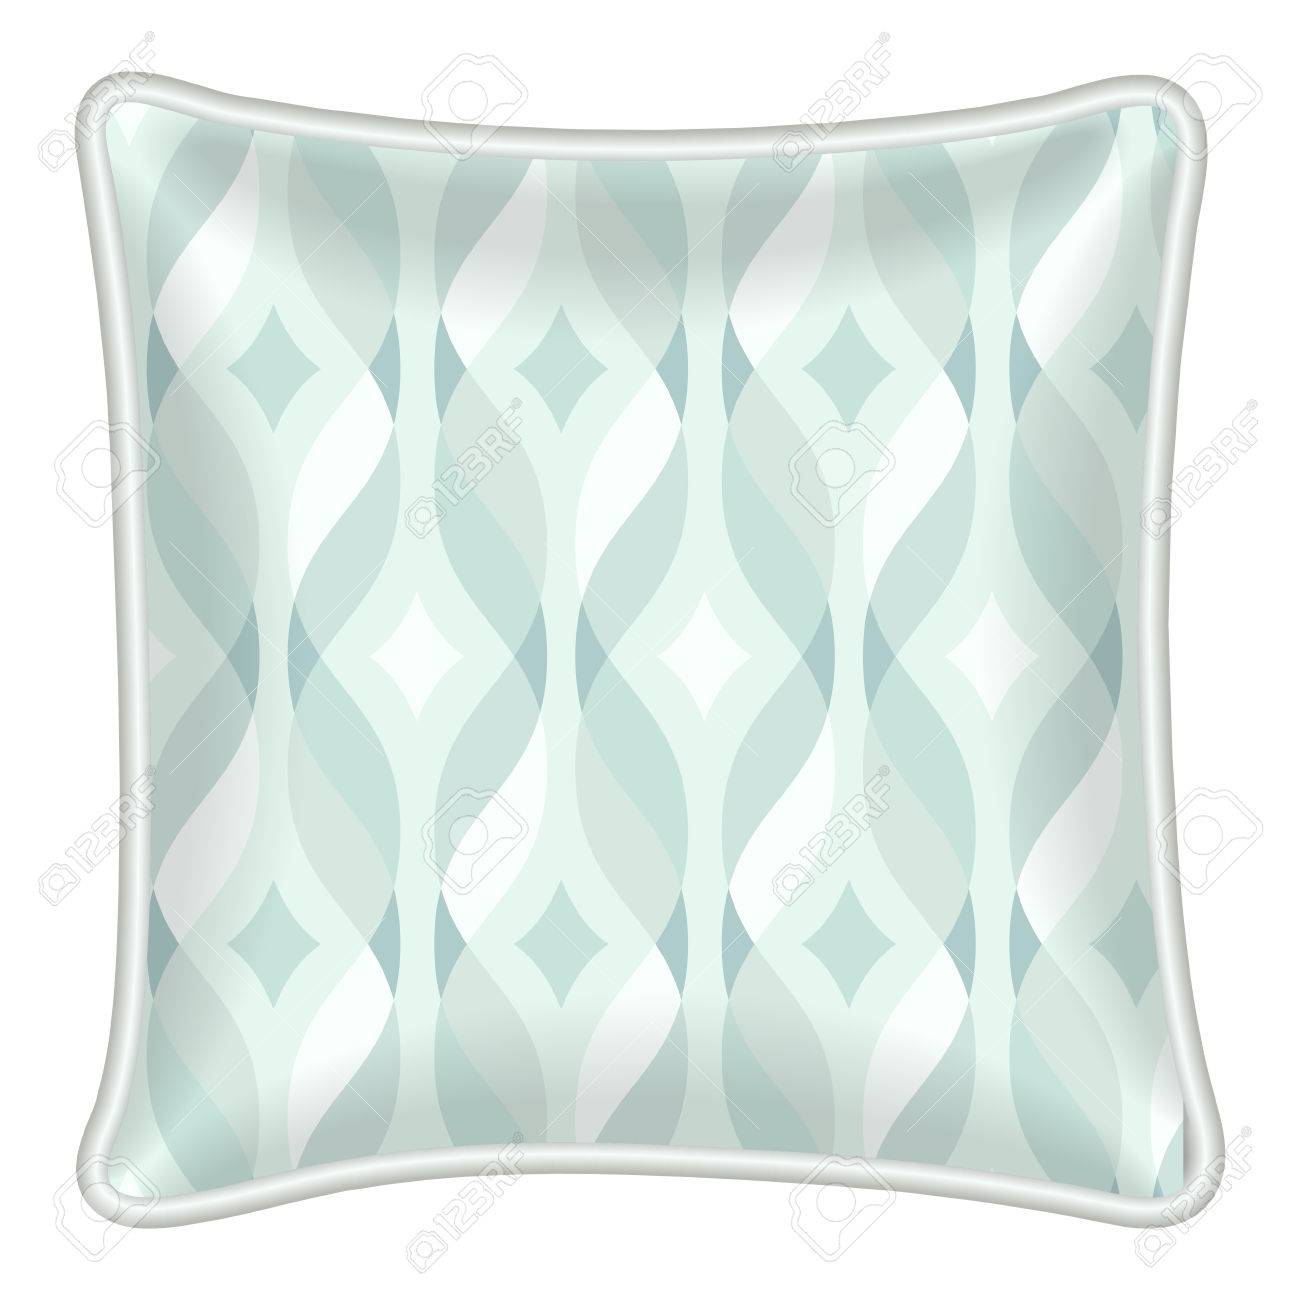 Interior Design Element Decorative Pillow With Patterned Pillowcase Tangled Teal Ribbon And Diamonds Pattern Stock Vector